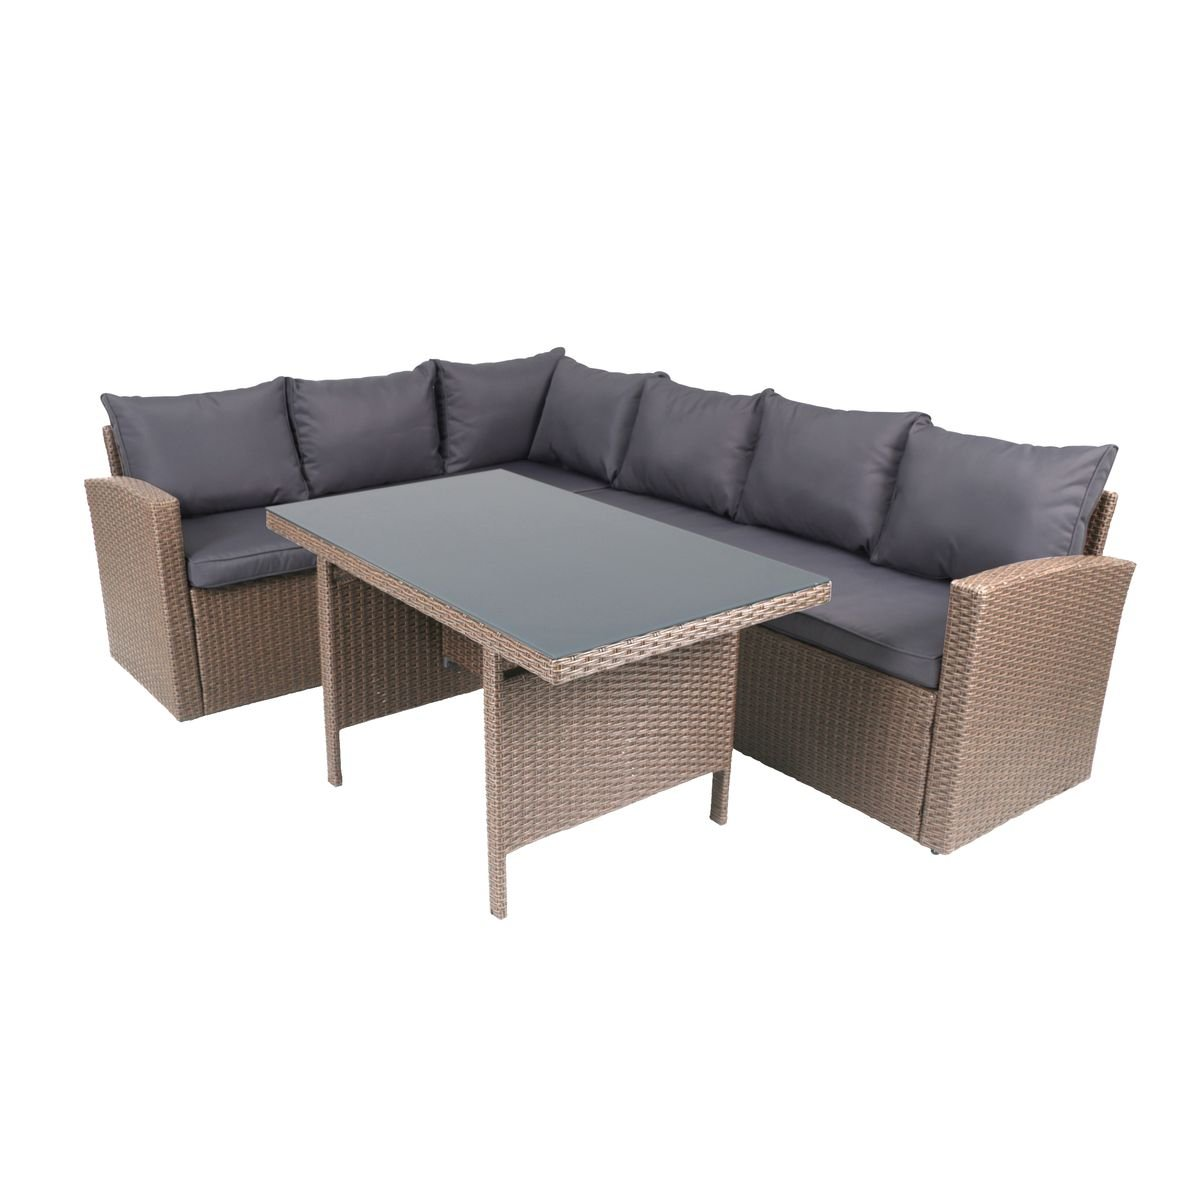 Loungemöbel indoor günstig  greemotion Rattan-Lounge Hamburg - Gartenmöbel-Set 3-teilig aus ...